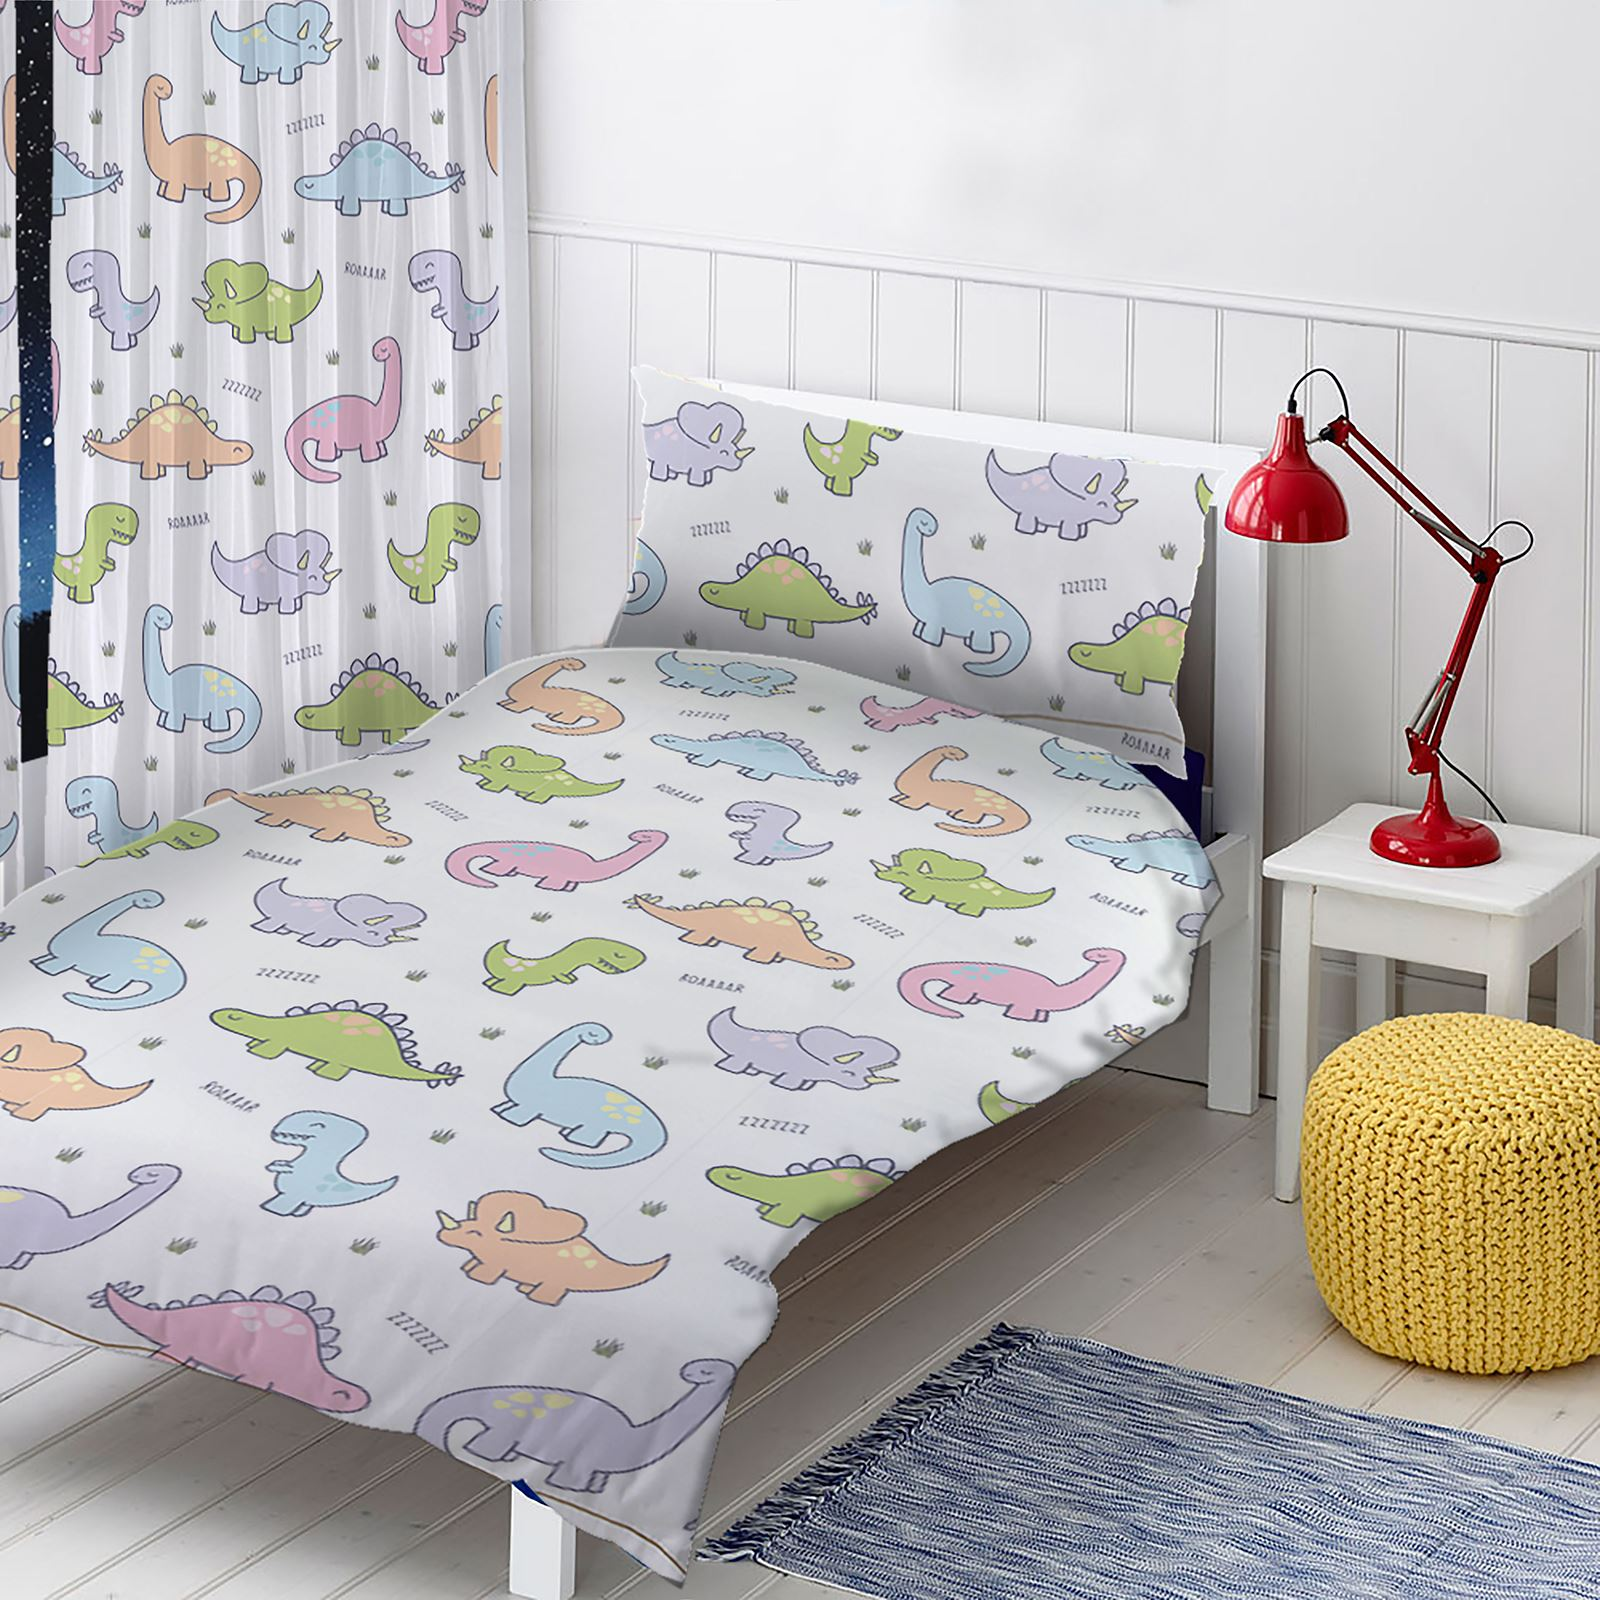 housse de couette junior ensembles b b literie dinosaures no l cars animaux ebay. Black Bedroom Furniture Sets. Home Design Ideas